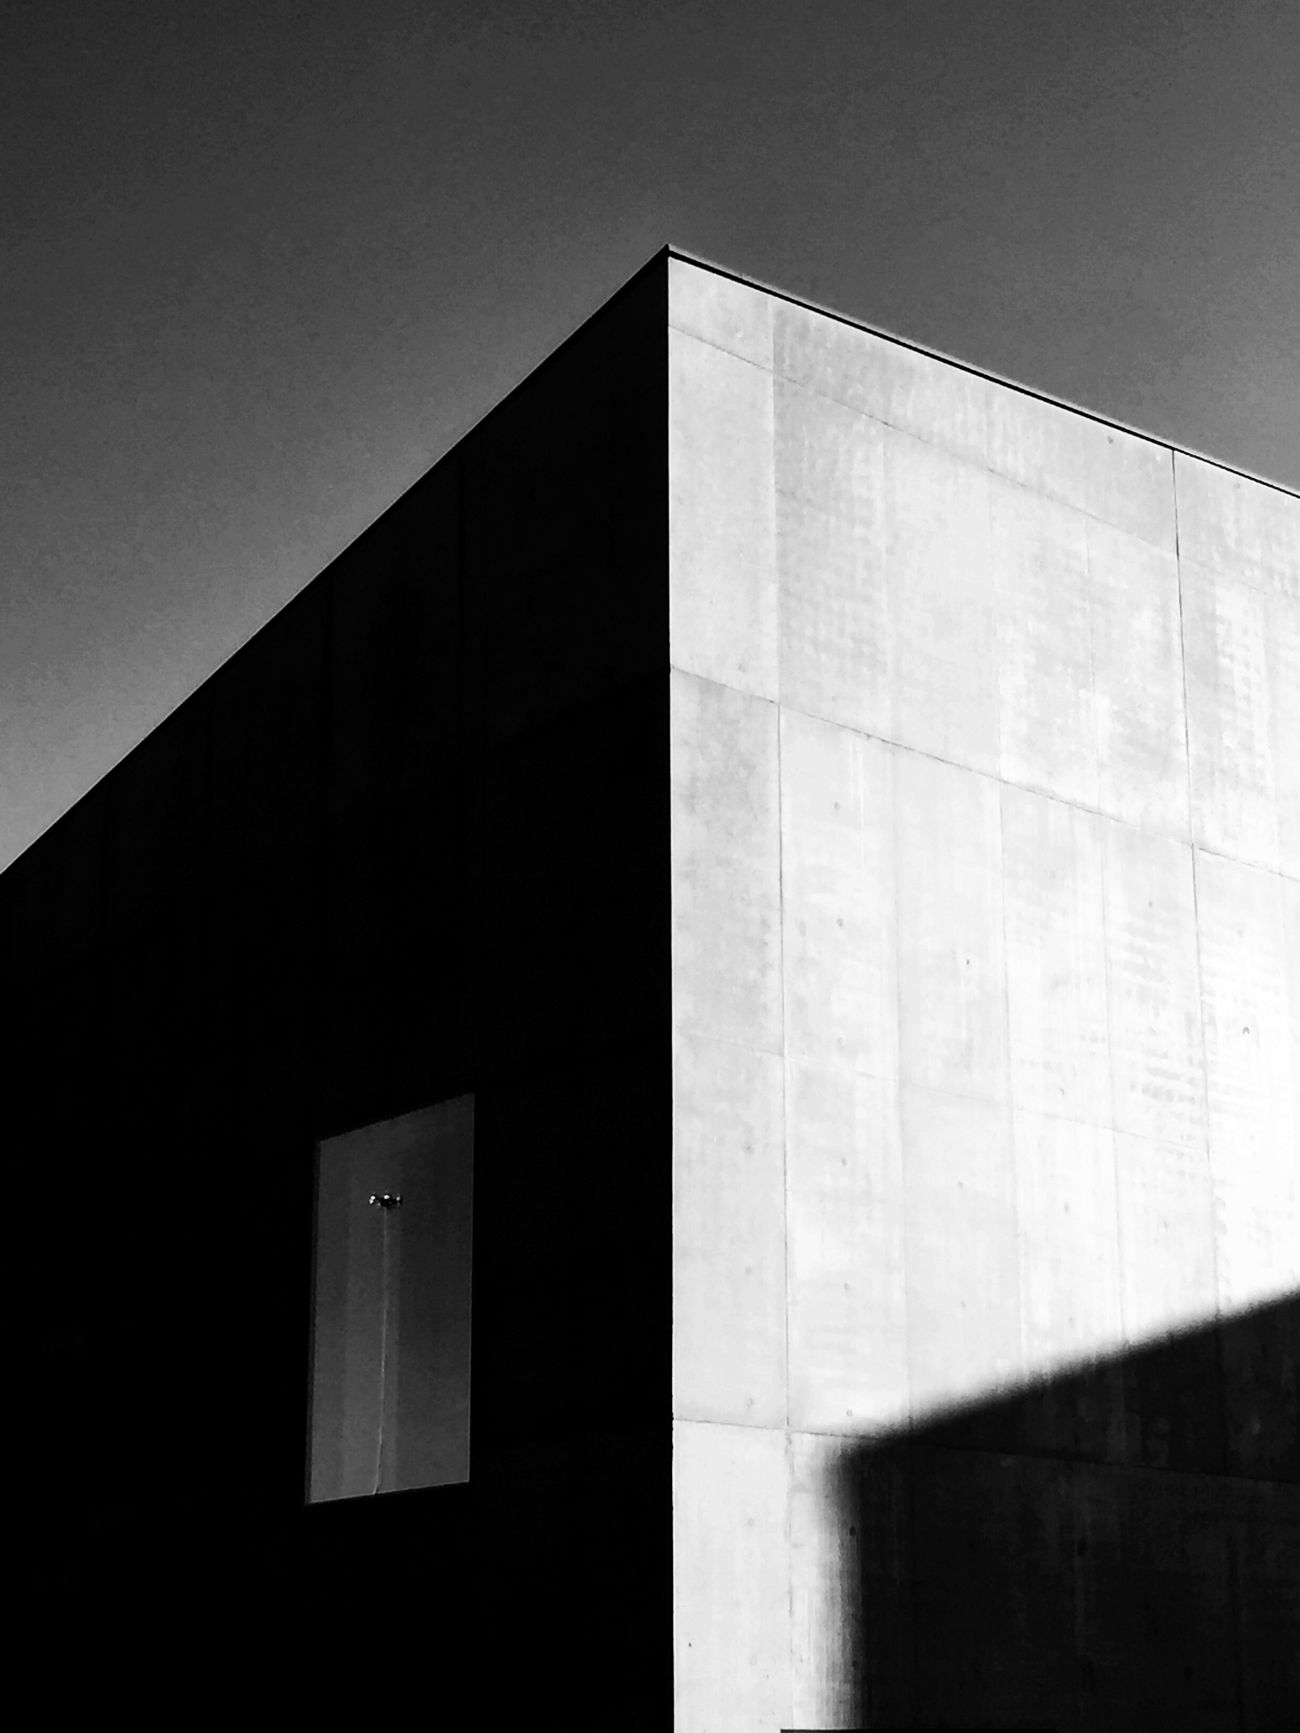 Blackandwhite Black And White Black & White Black And White Photography Monochrome Shadow Light And Shadow Architecture Building The City Light